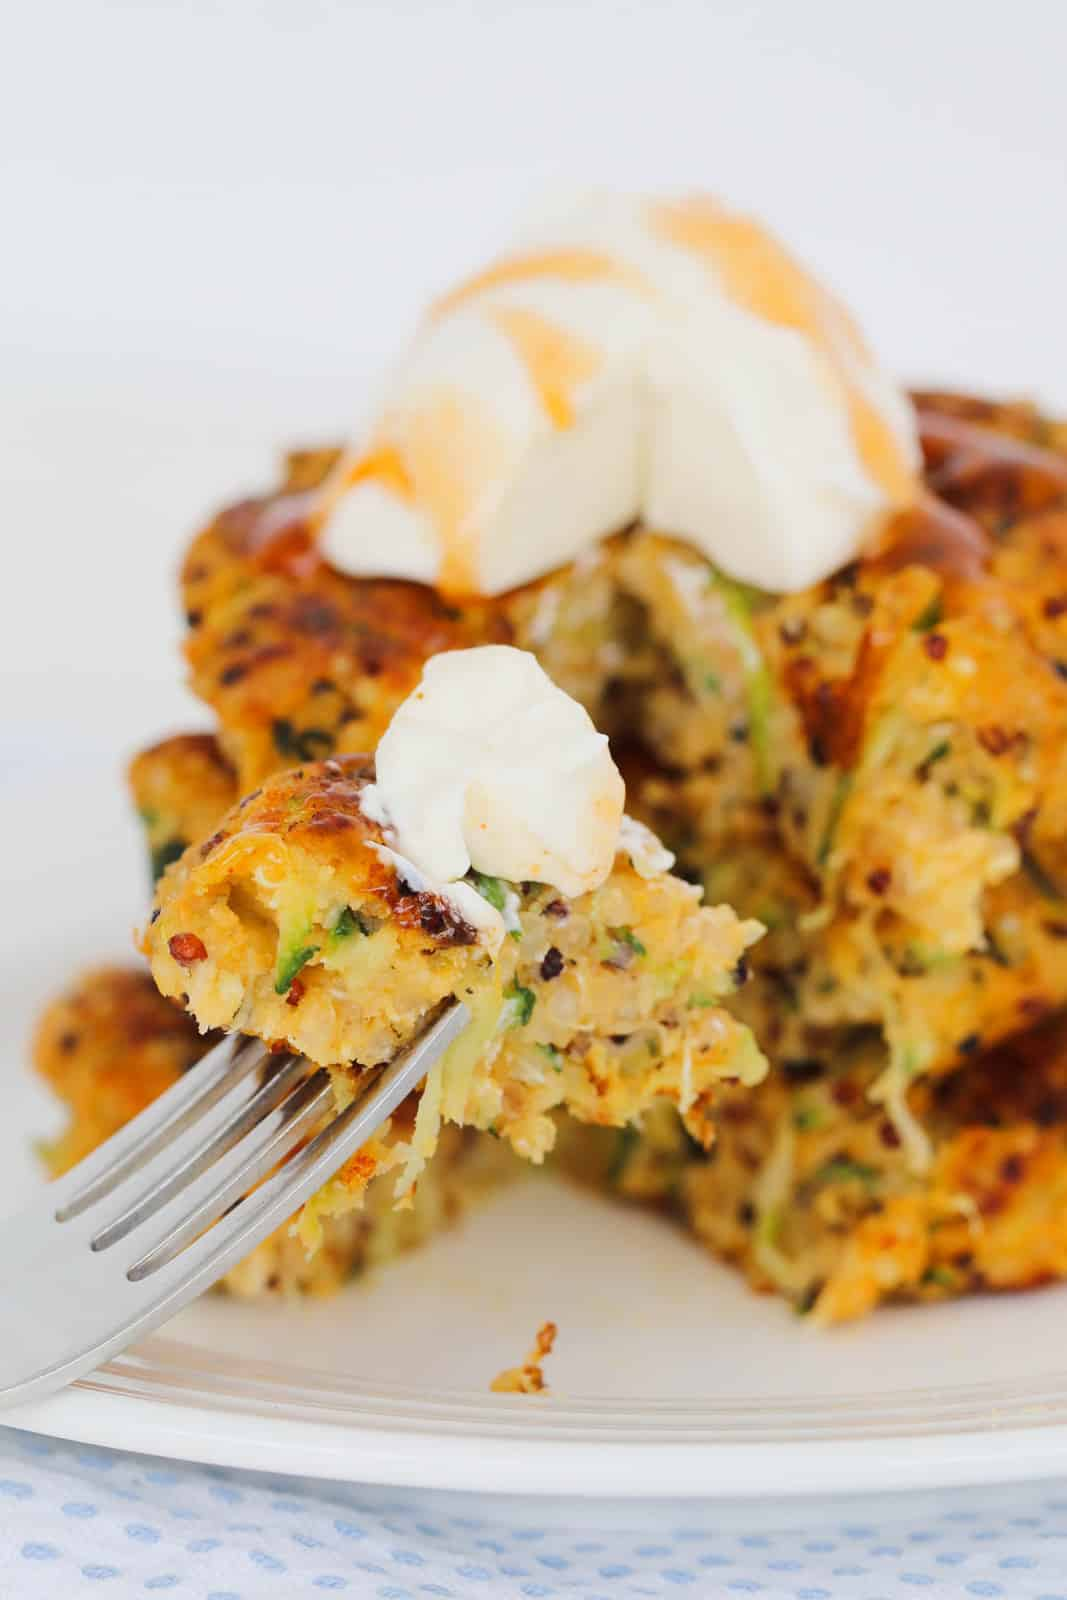 Quinoa sweet potato fritters on white plate with fork